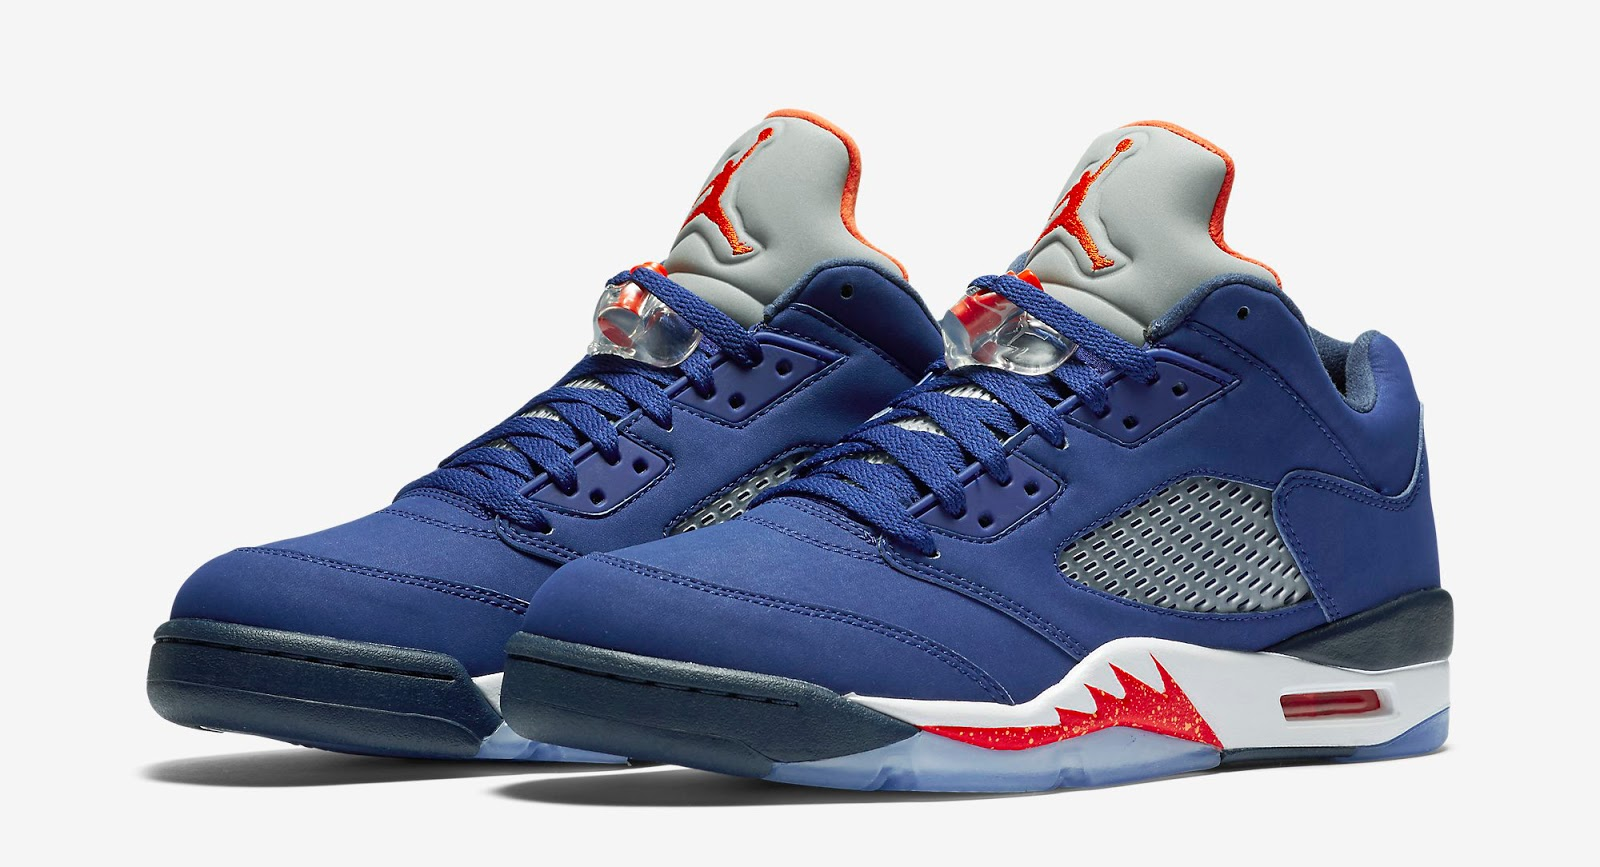 fd8d5b258e62c3 Air Jordan 5 Retro Low